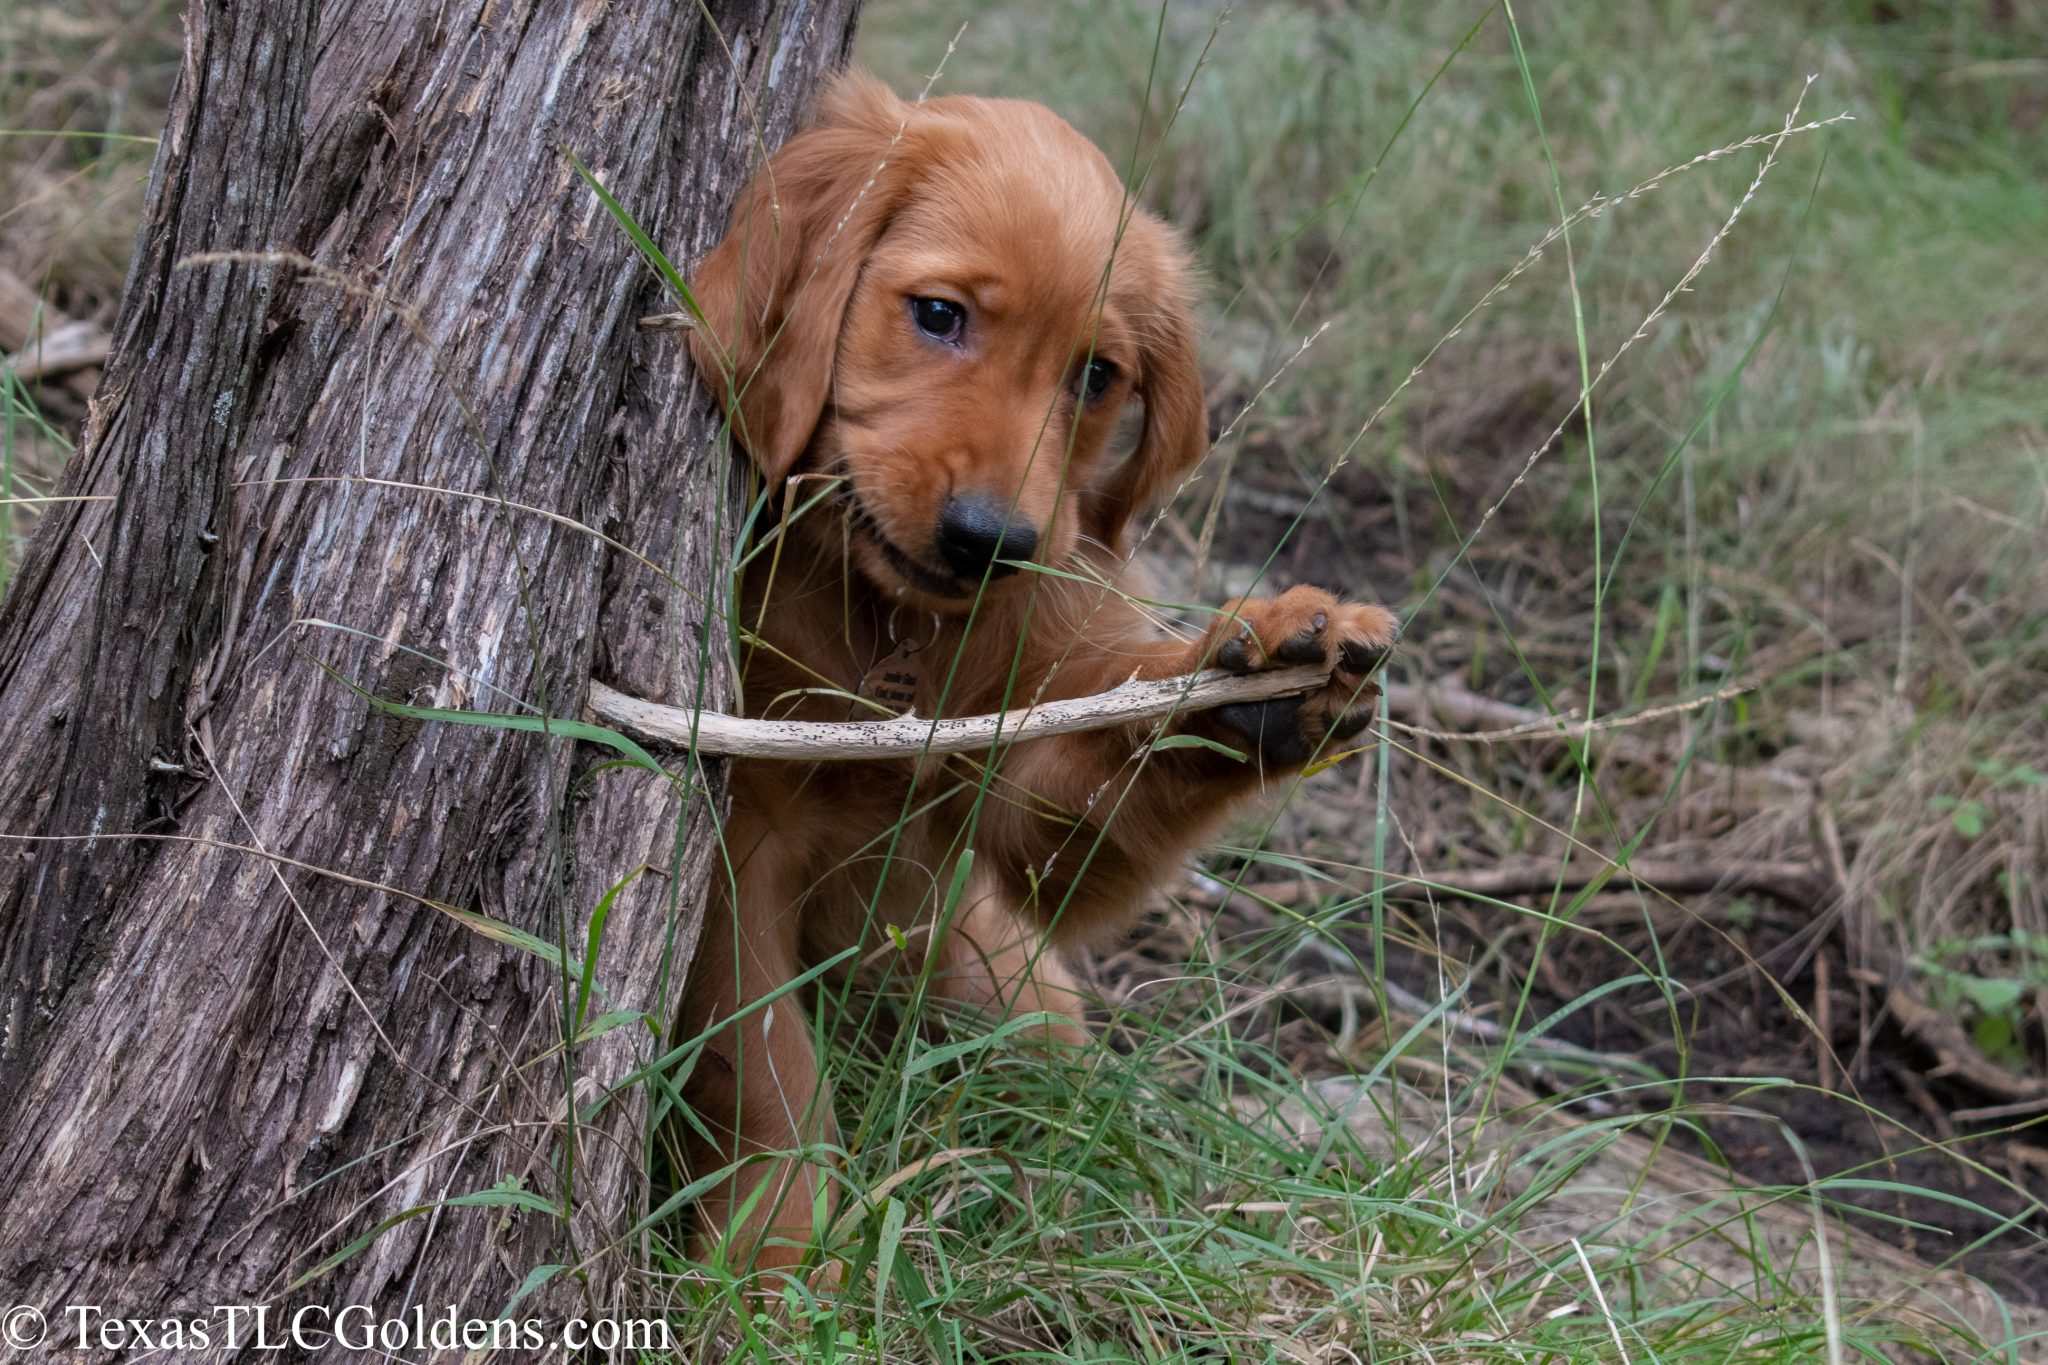 Shipping Golden Retriever Puppies | | Texas TLC Goldens